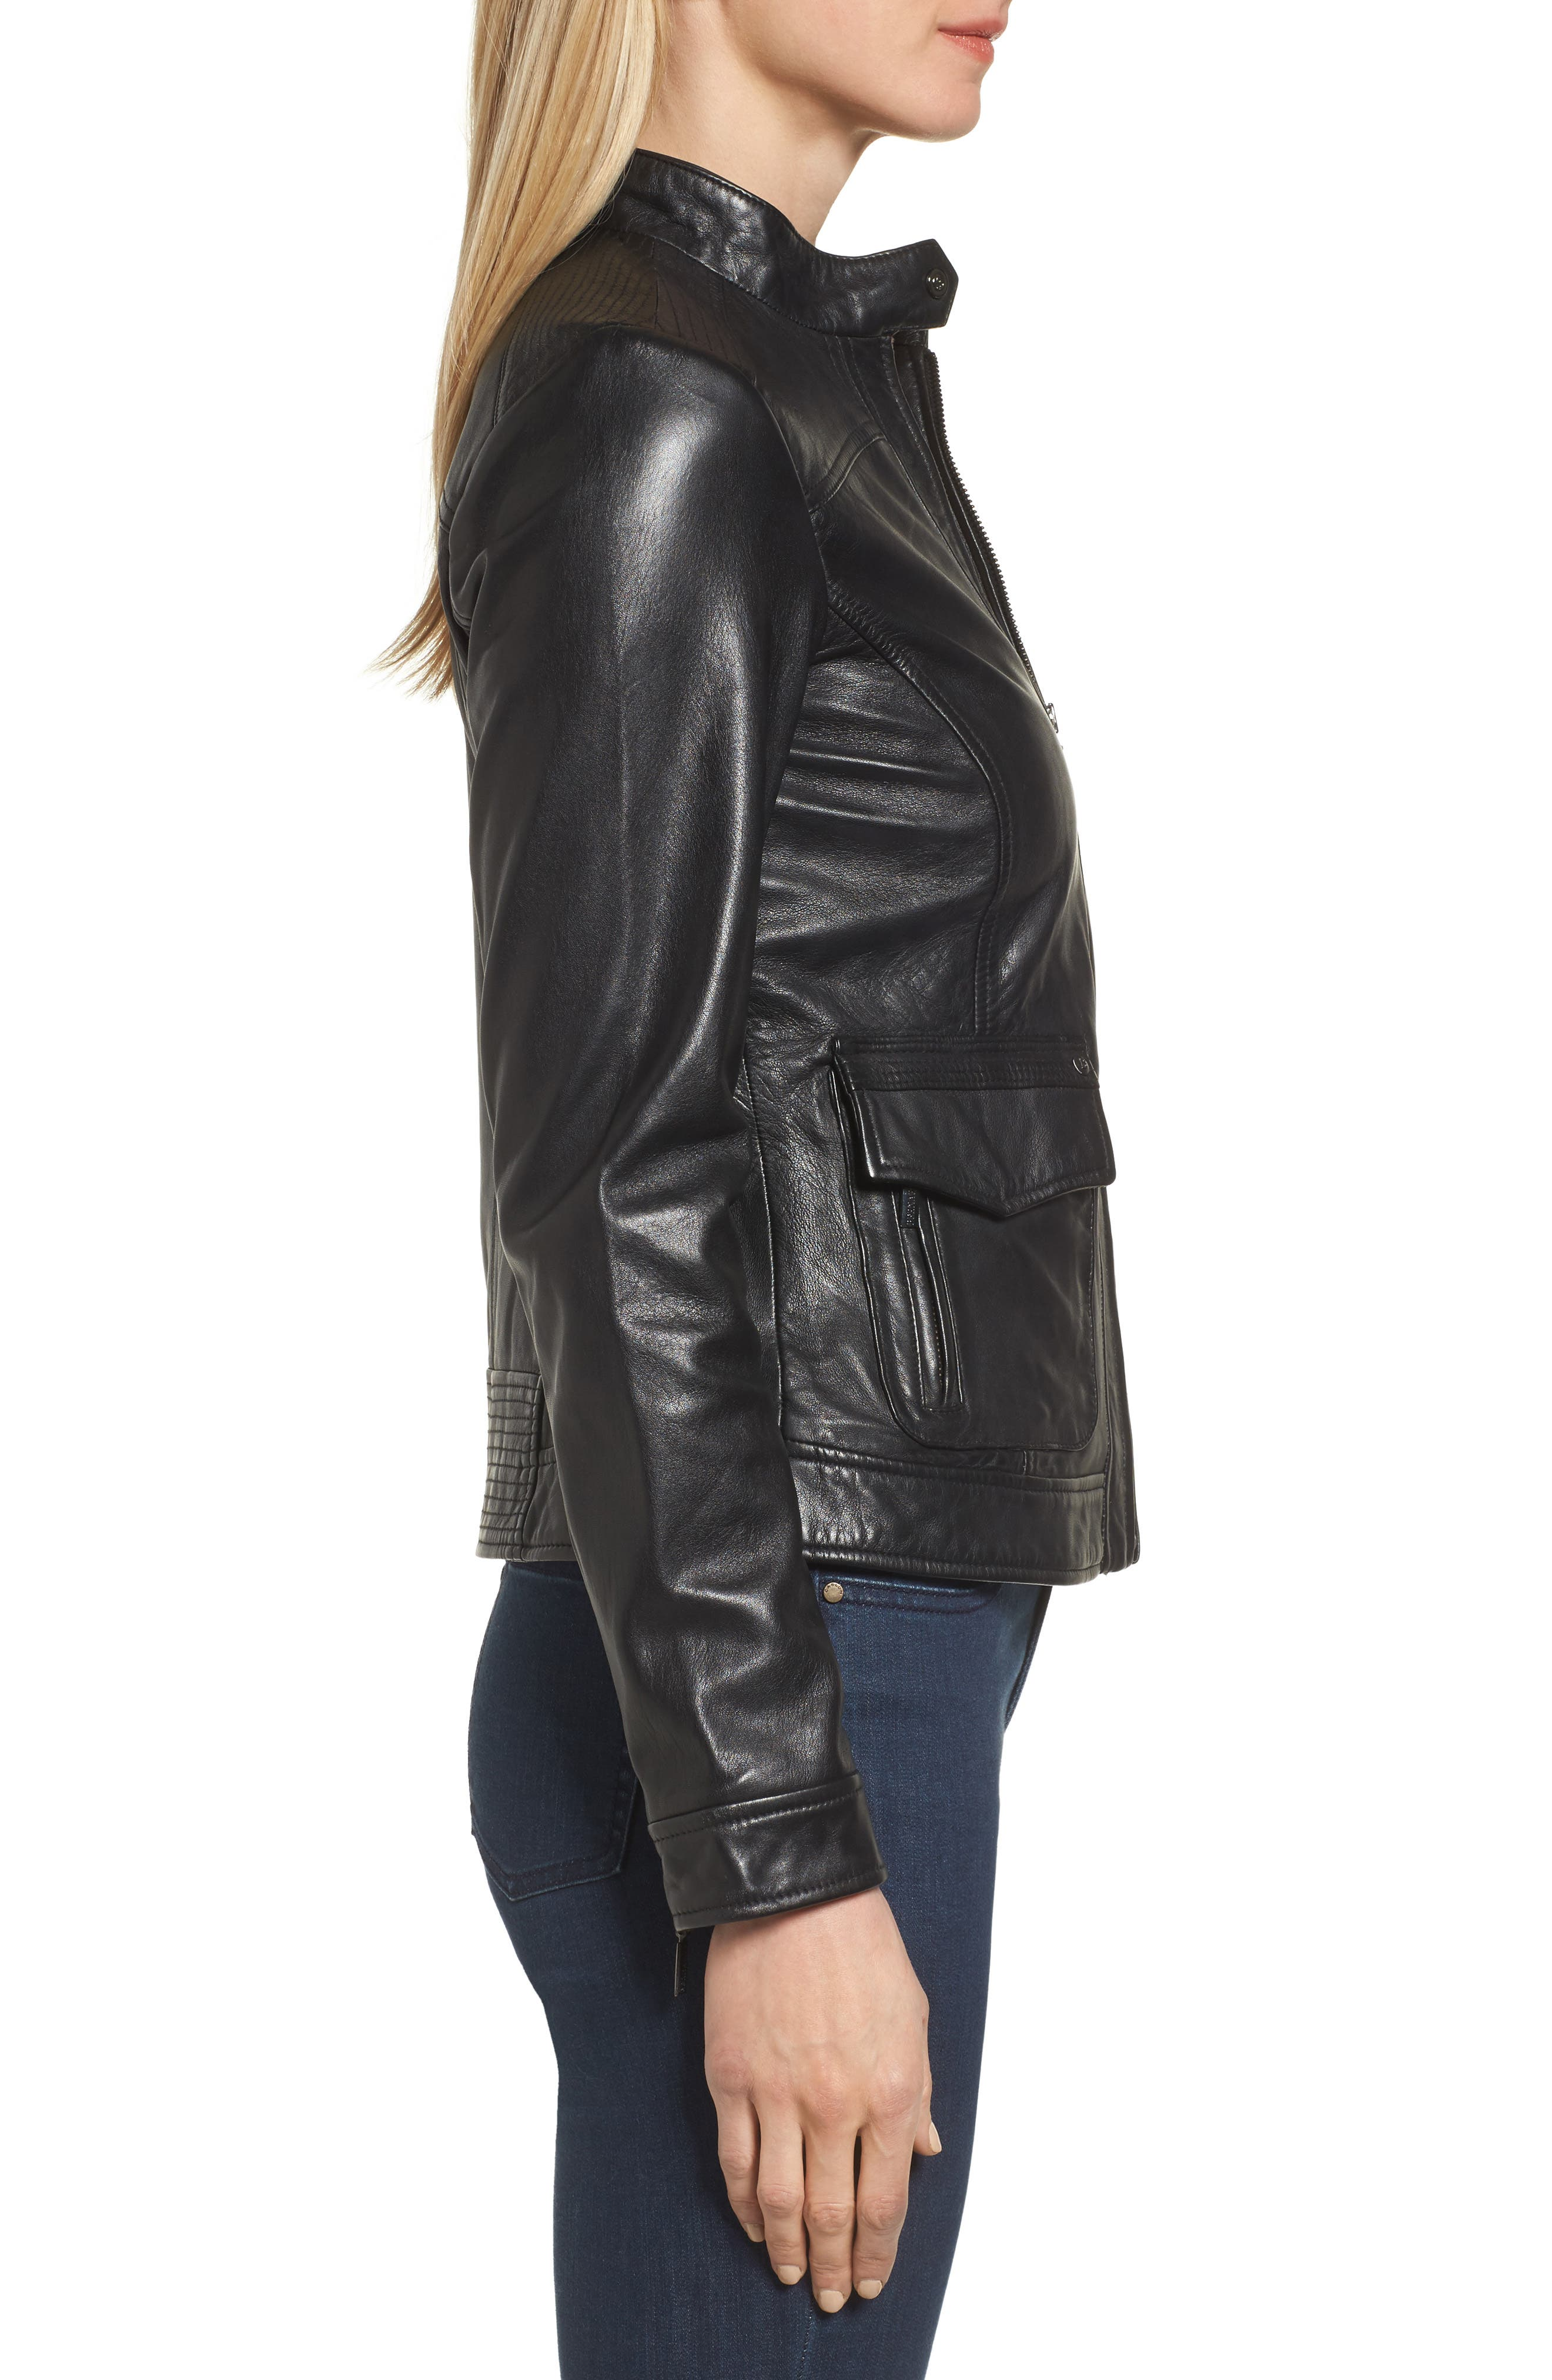 Kerwin Pocket Detail Leather Jacket,                             Alternate thumbnail 3, color,                             001